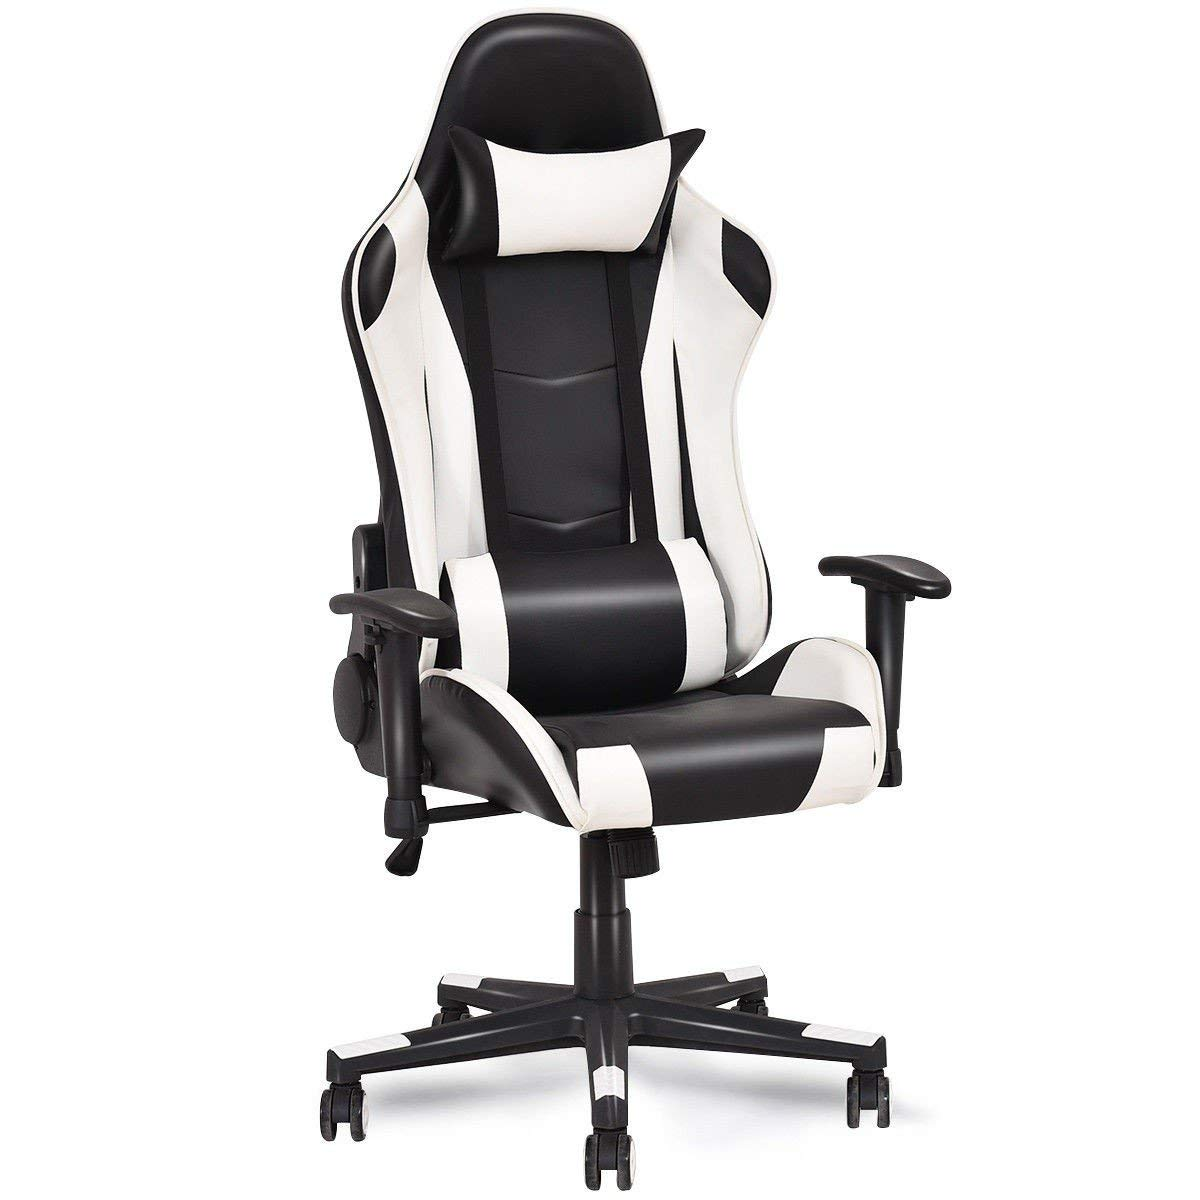 Svitlife Racing Style High Back Gaming Chair Back Racing Office Swivel Computer Style